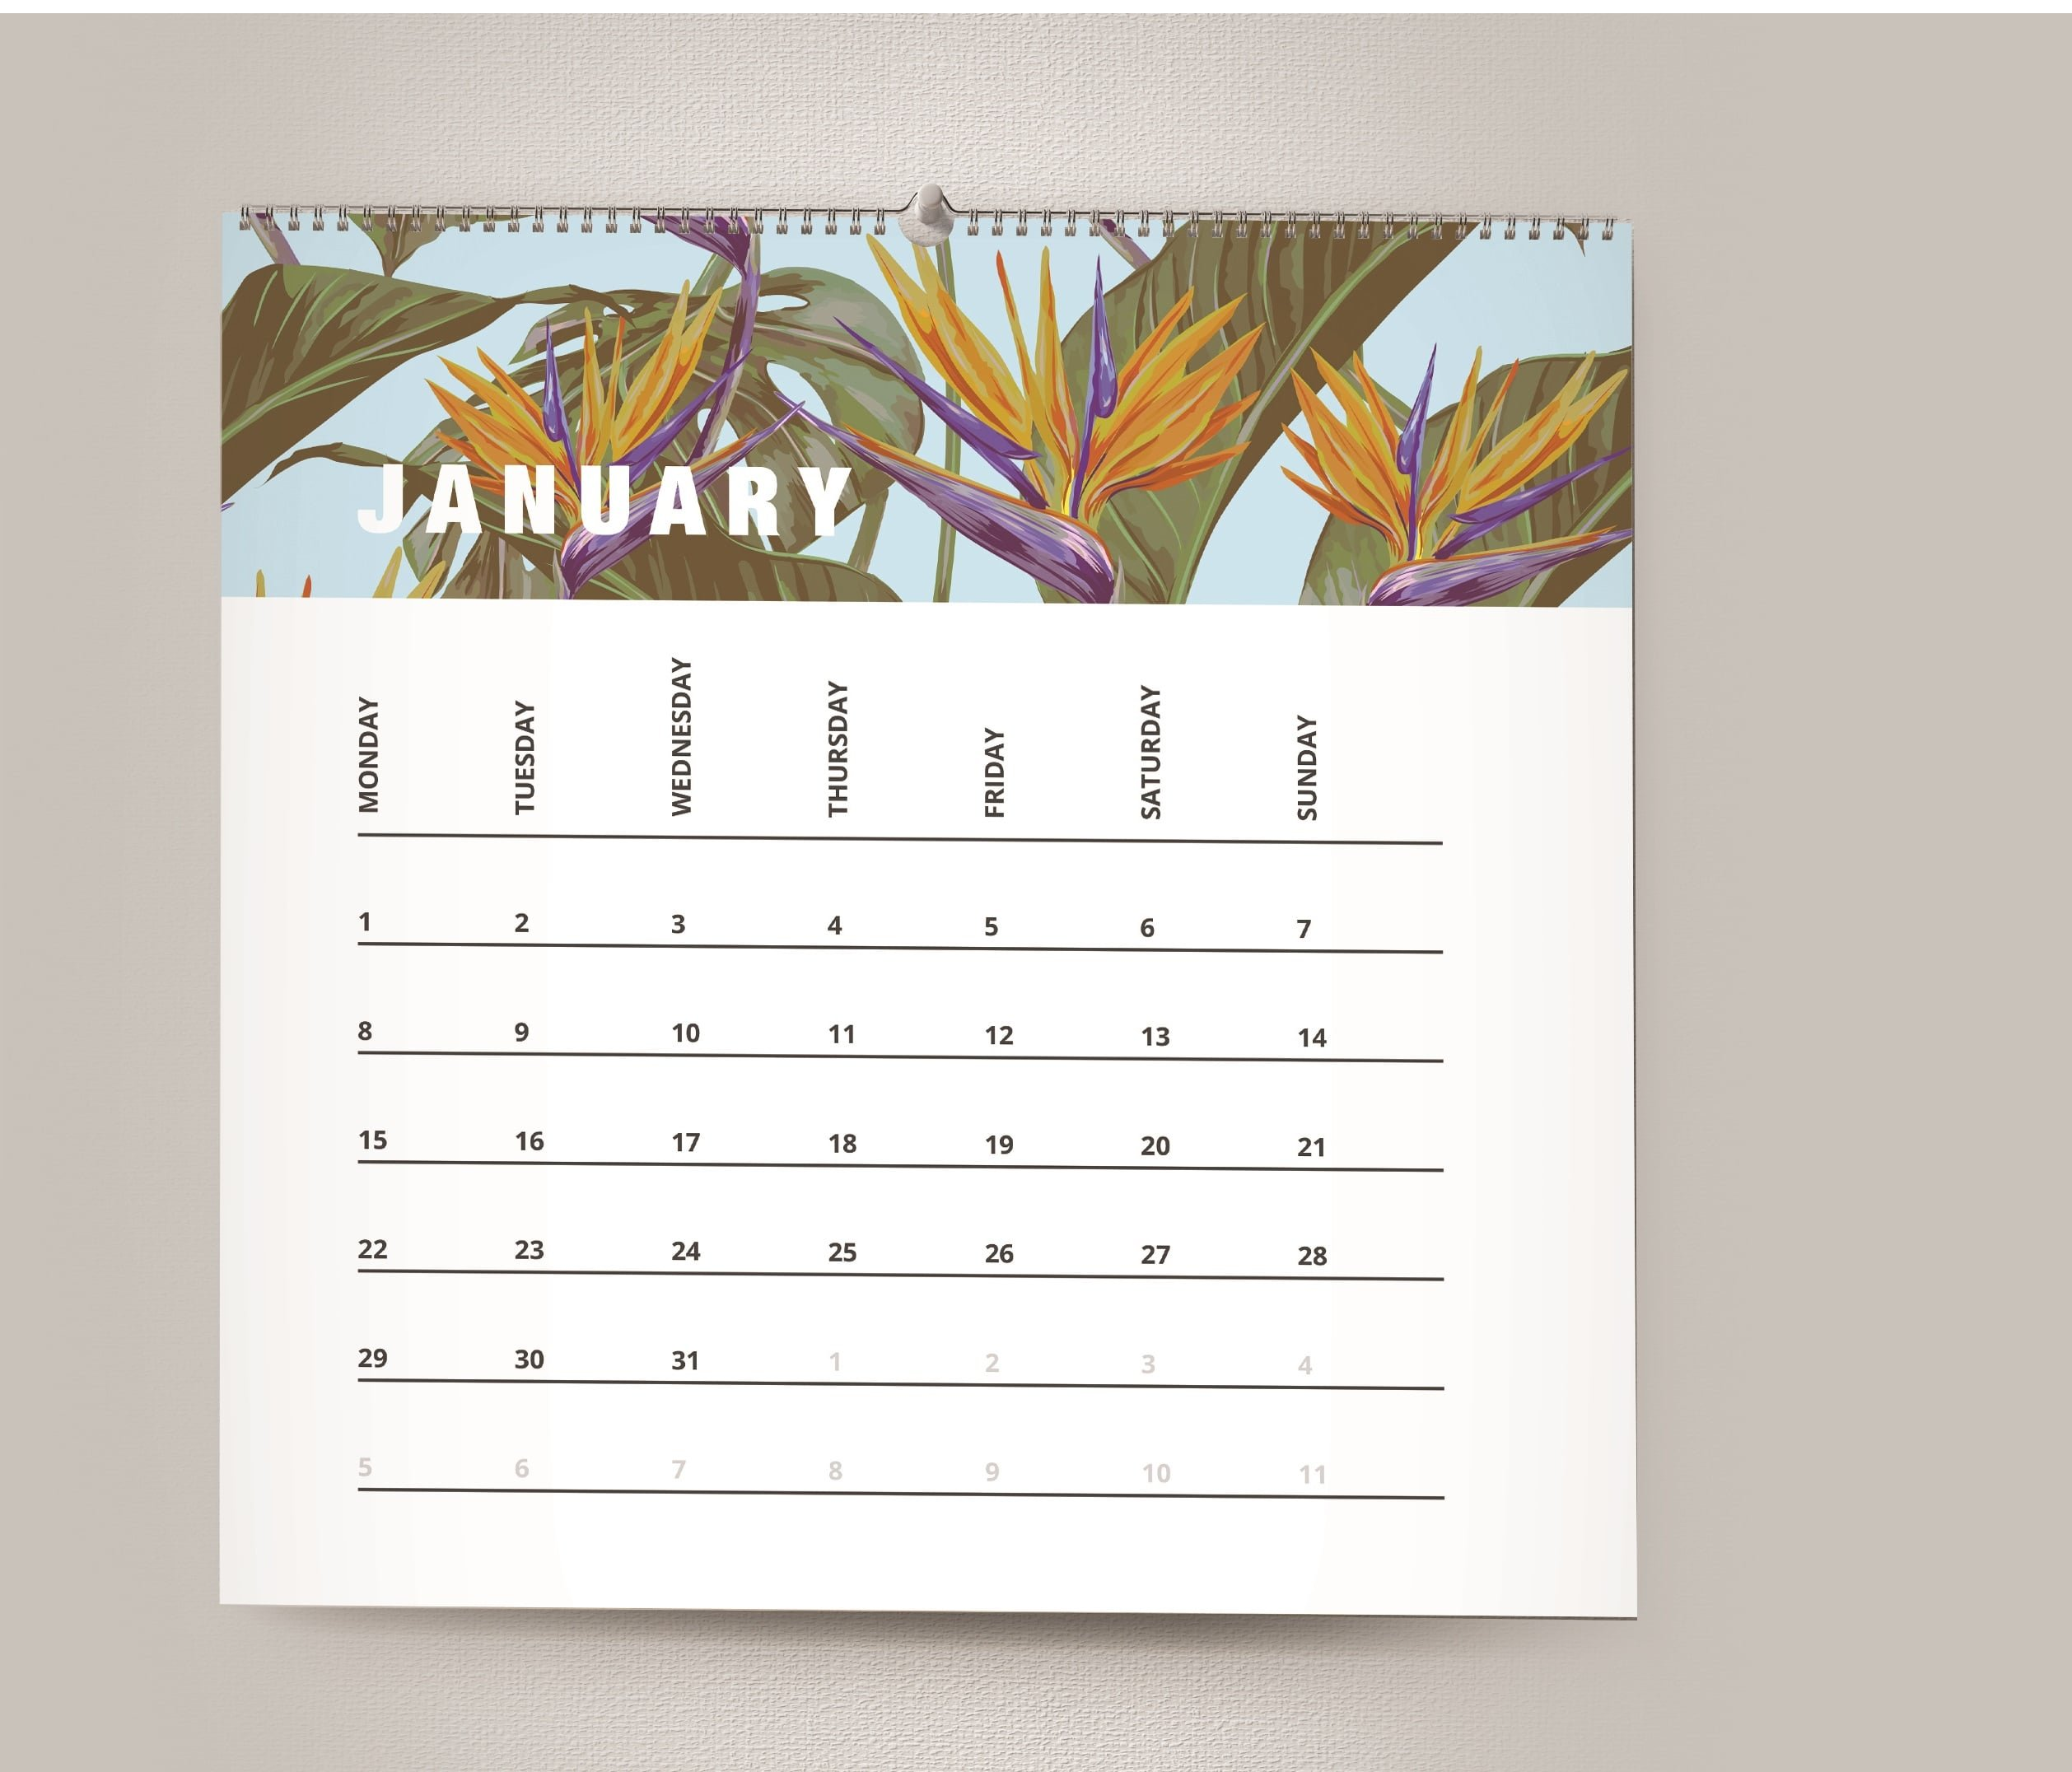 Personalised Spiral Bound Wall Calendar www.ontimeprint.com